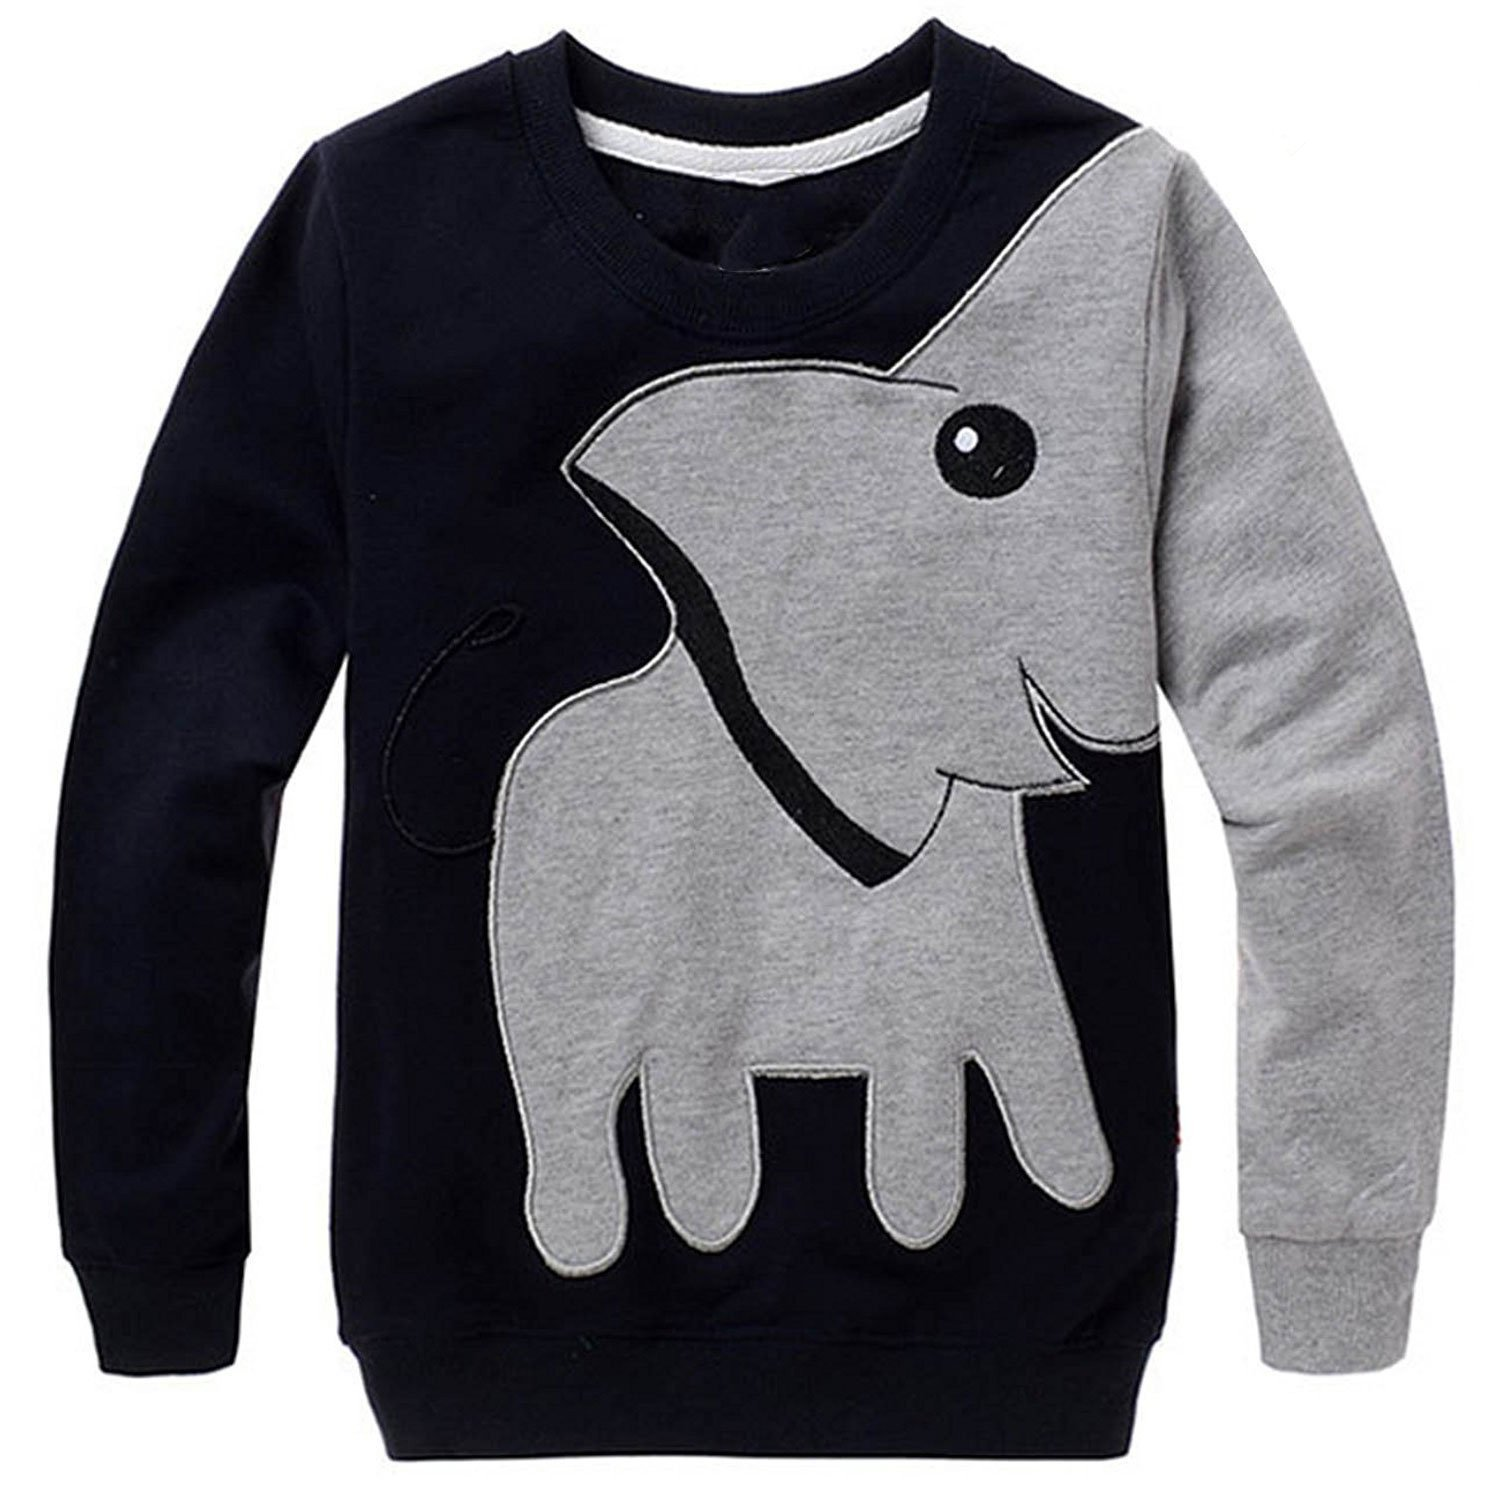 LitBud Boy Elephant Sweatshirt for Kid Toddler Halloween Pullover Casual T Autumn Shirt Jumpers Tops Size 5-6 Years Black